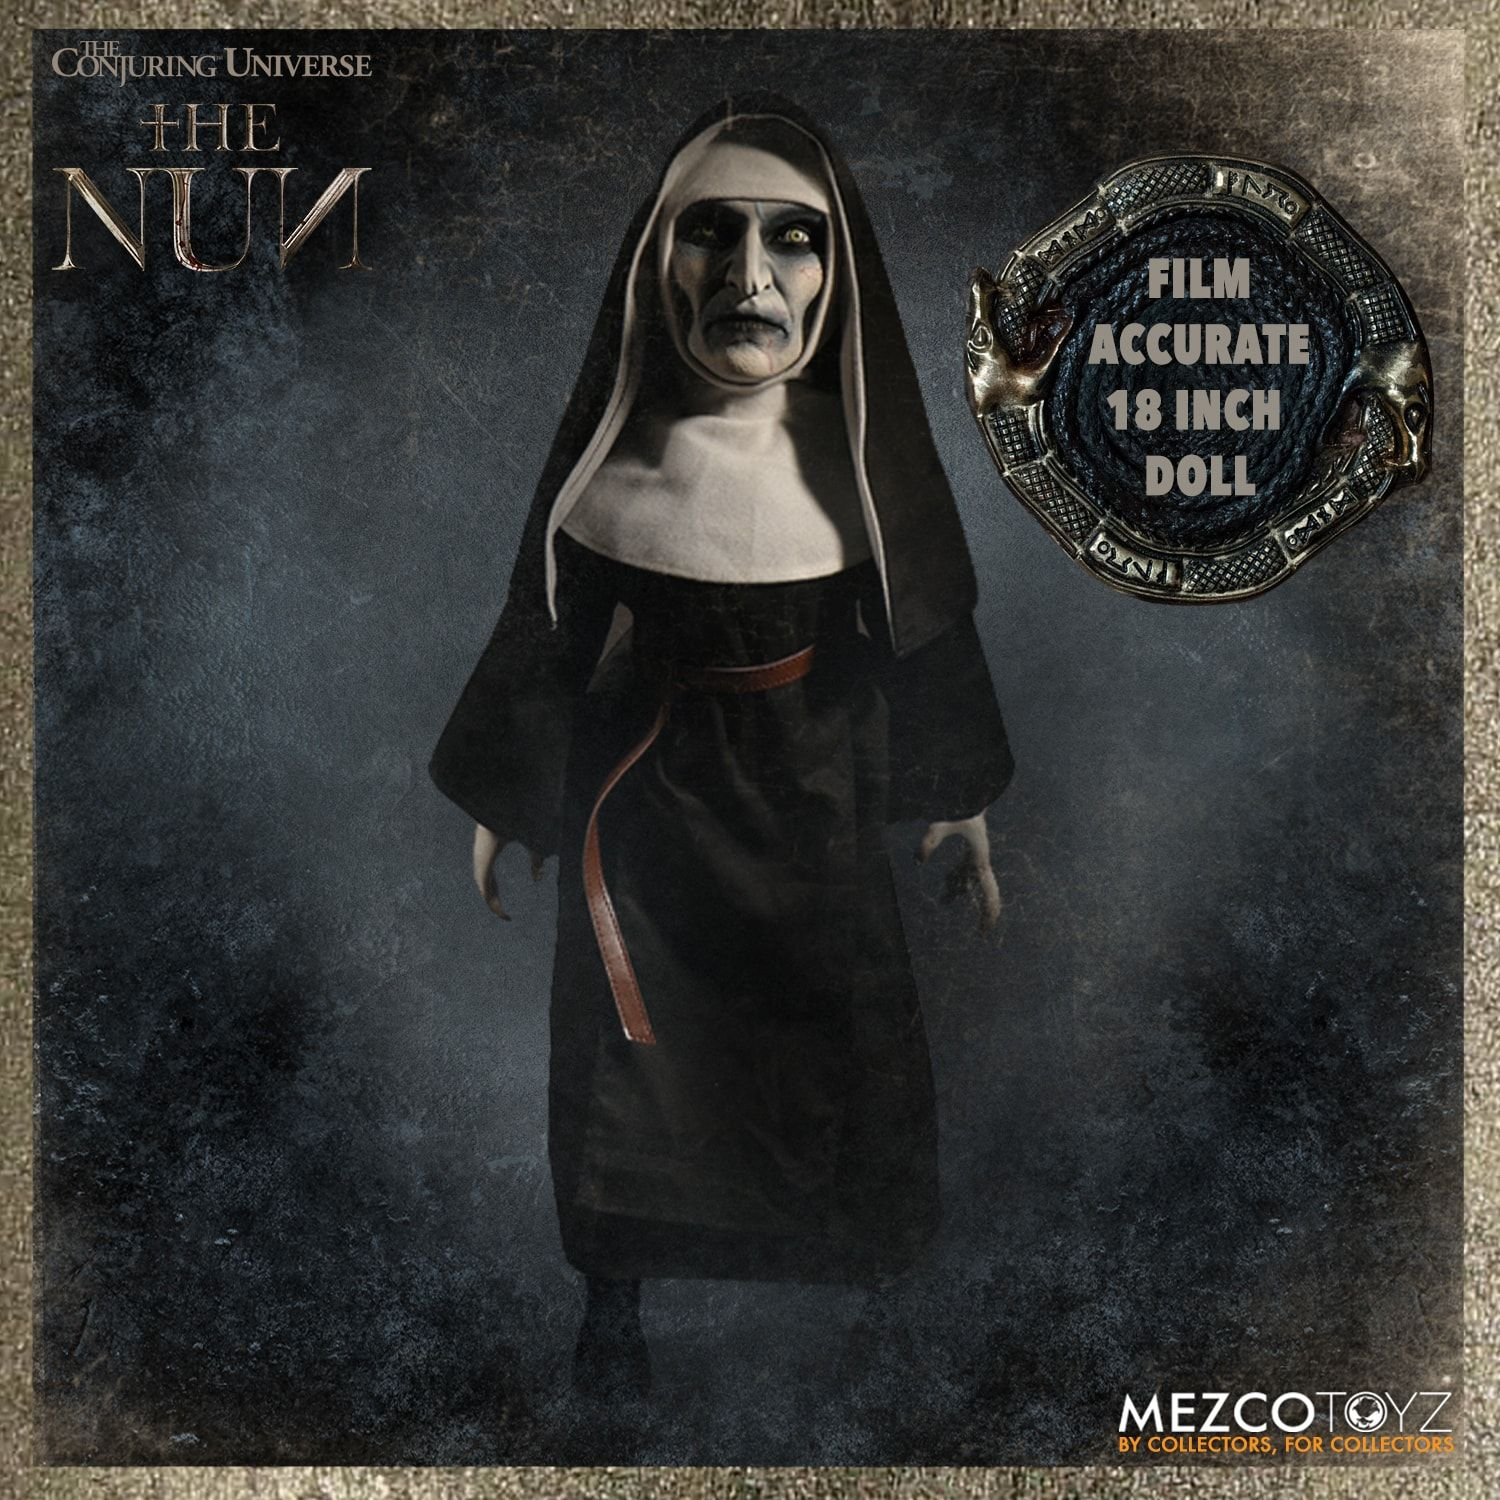 The Nun 2 1 - Mezco's THE NUN Doll May Be Scarier Than the Movie Itself